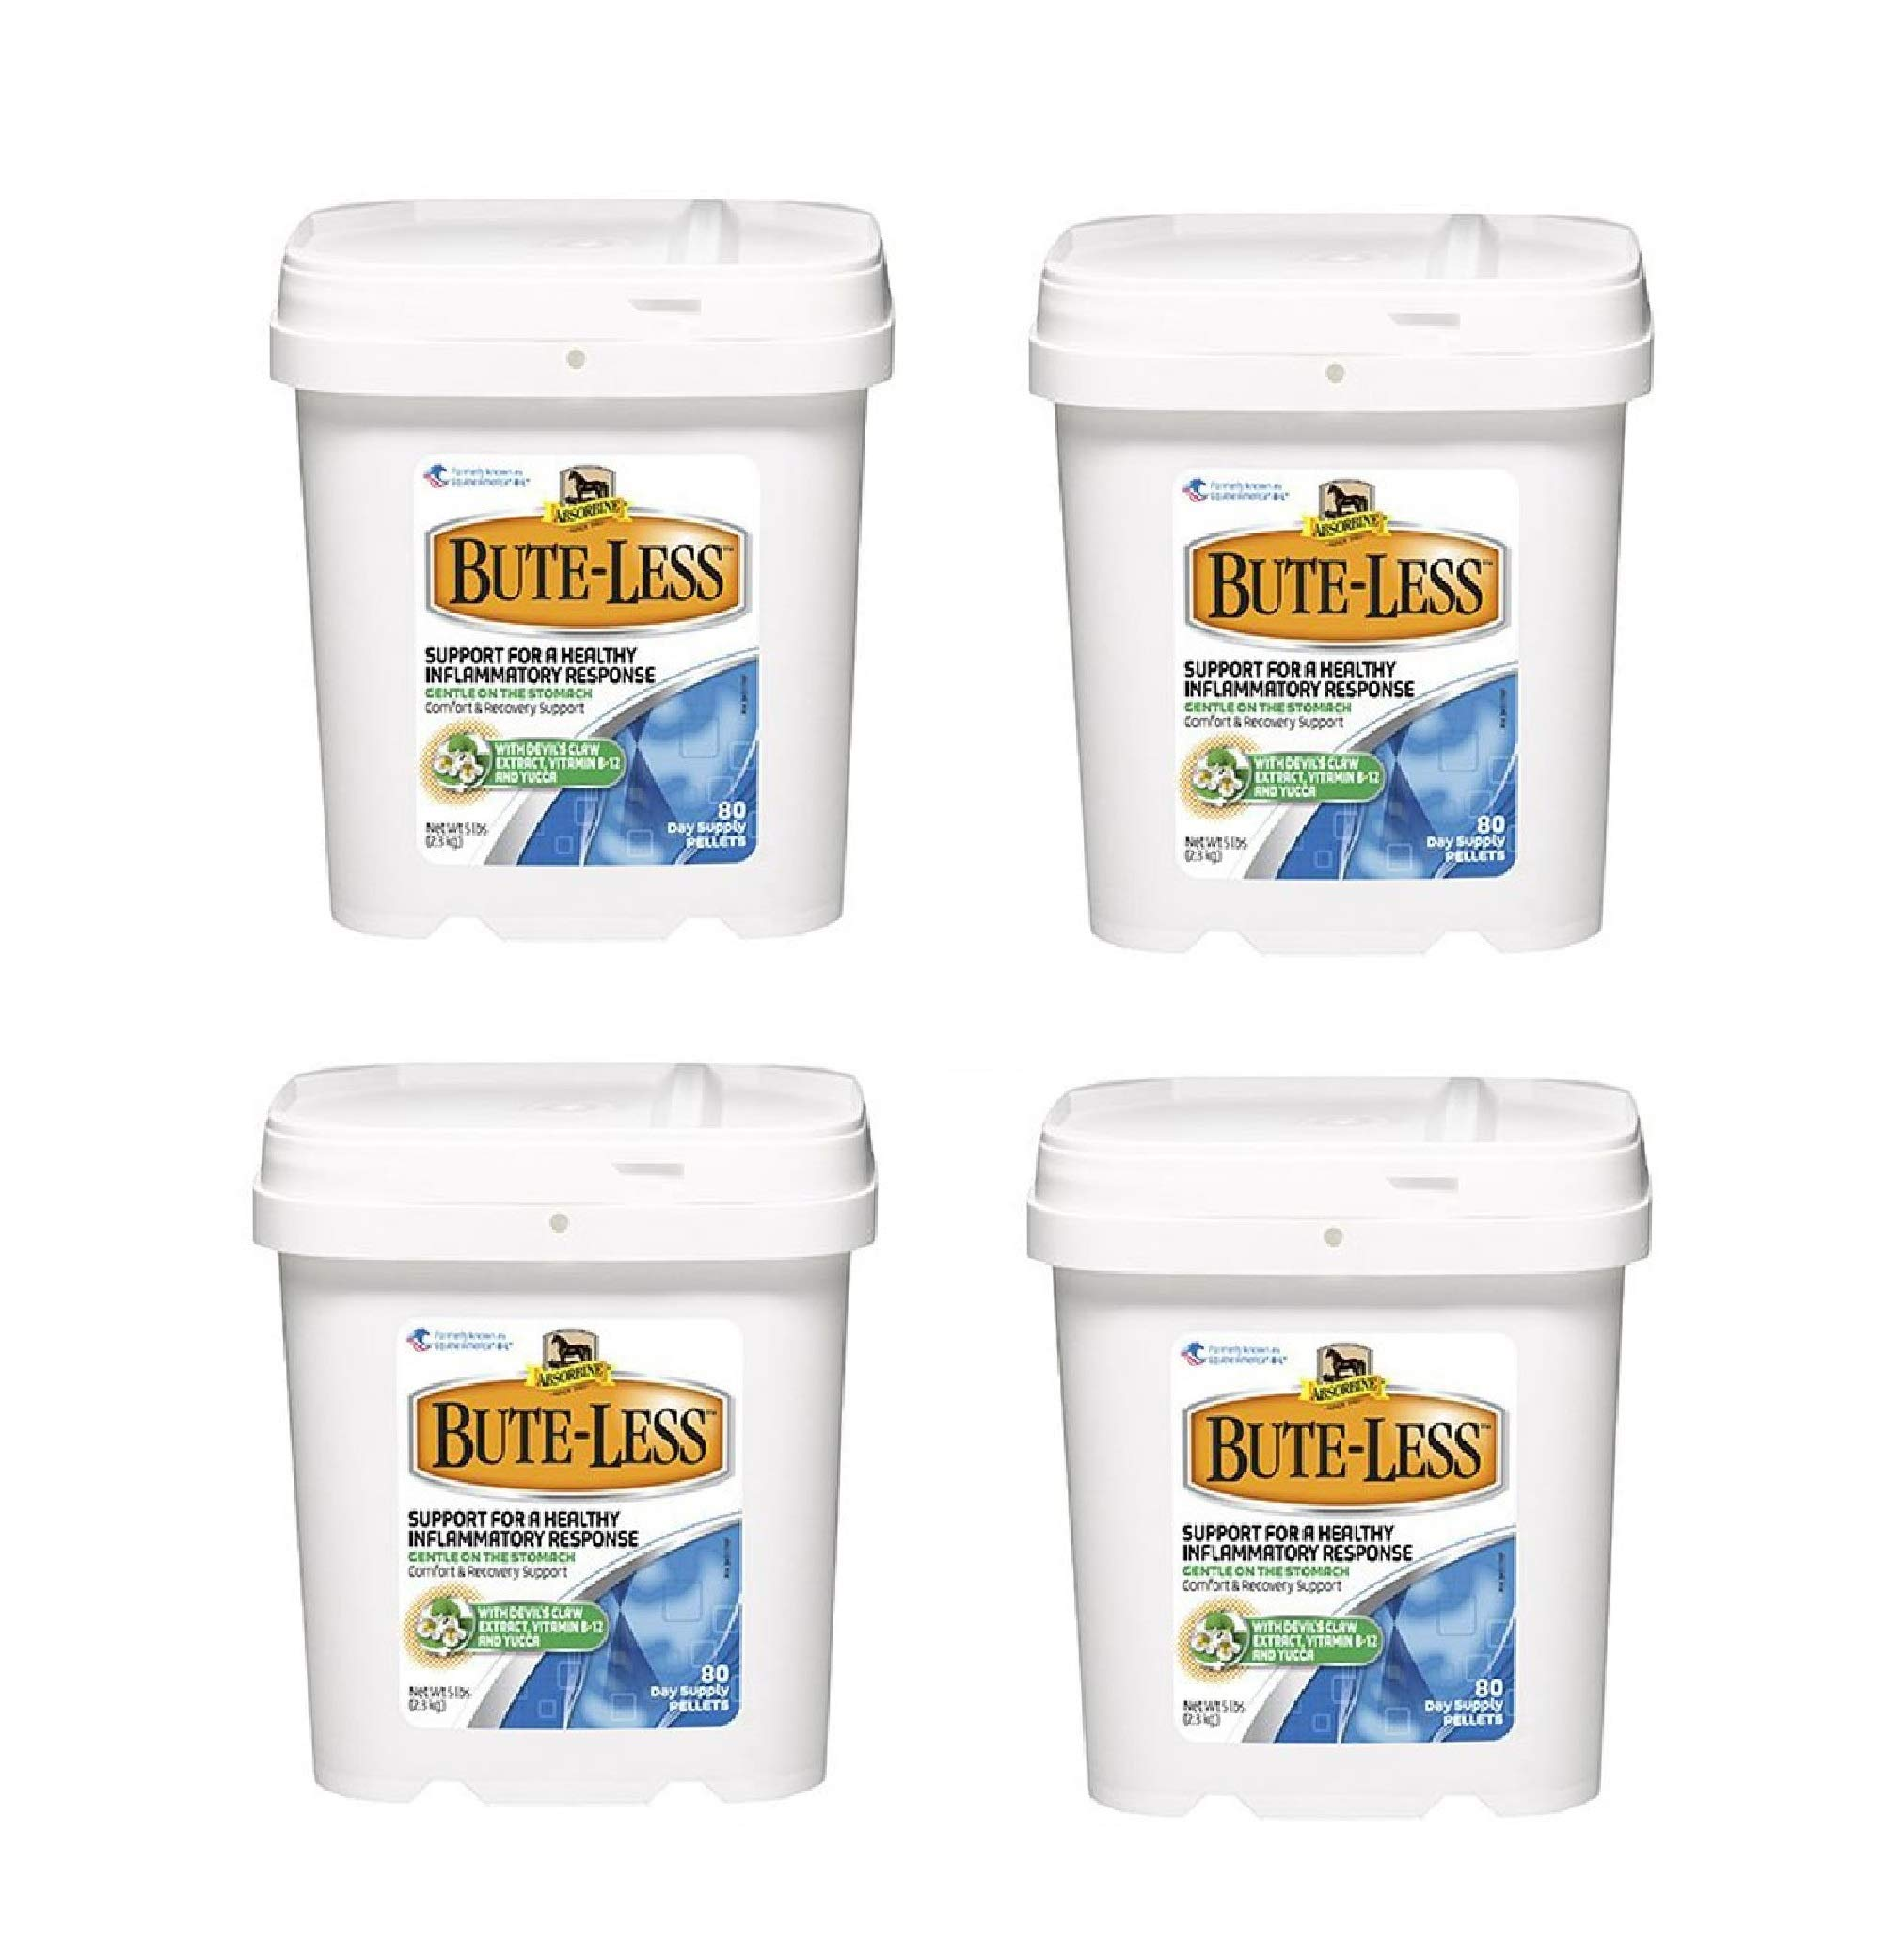 WF Young Absorbine Bute-Less Pellets (4 Pack)